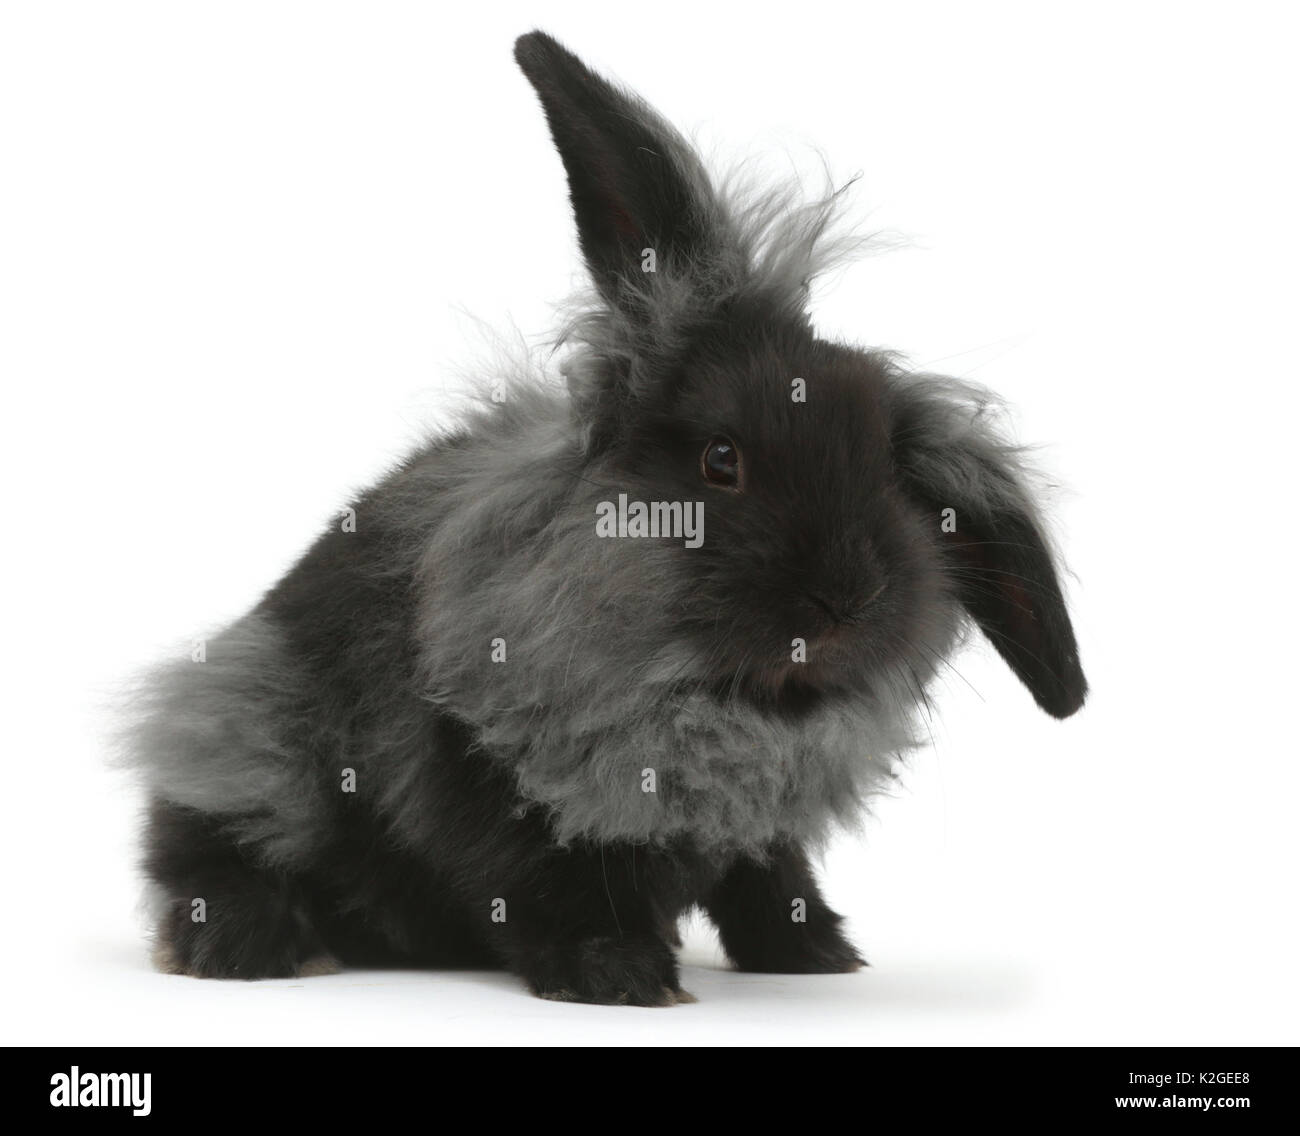 Black smoke fluffy Lionhead x Lop rabbit moulting. Stock Photo